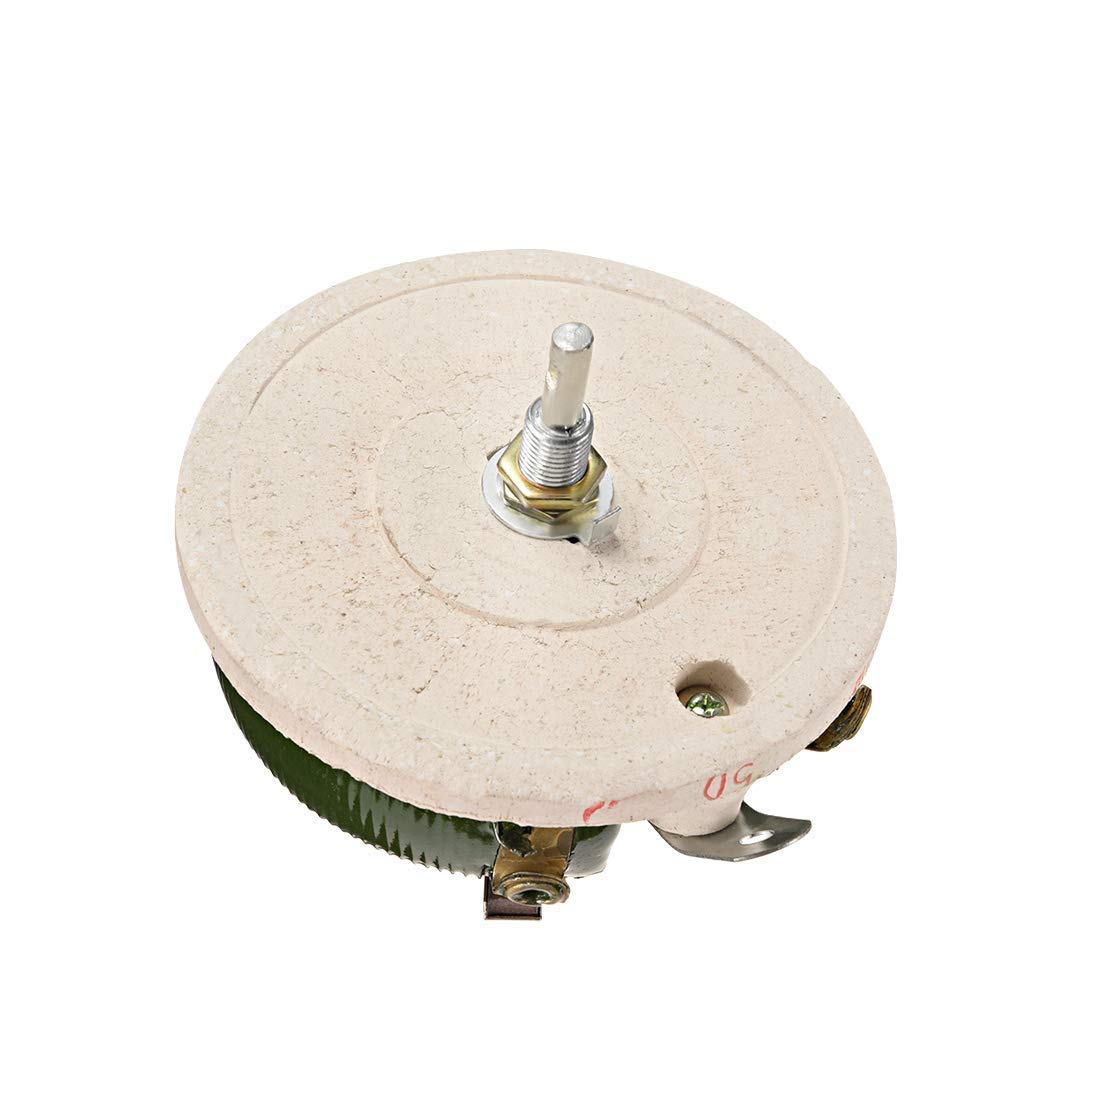 uxcell 10 Ohm 150W High Power Ceramic Wirewound Potentiometer Rheostat Variable Resistor